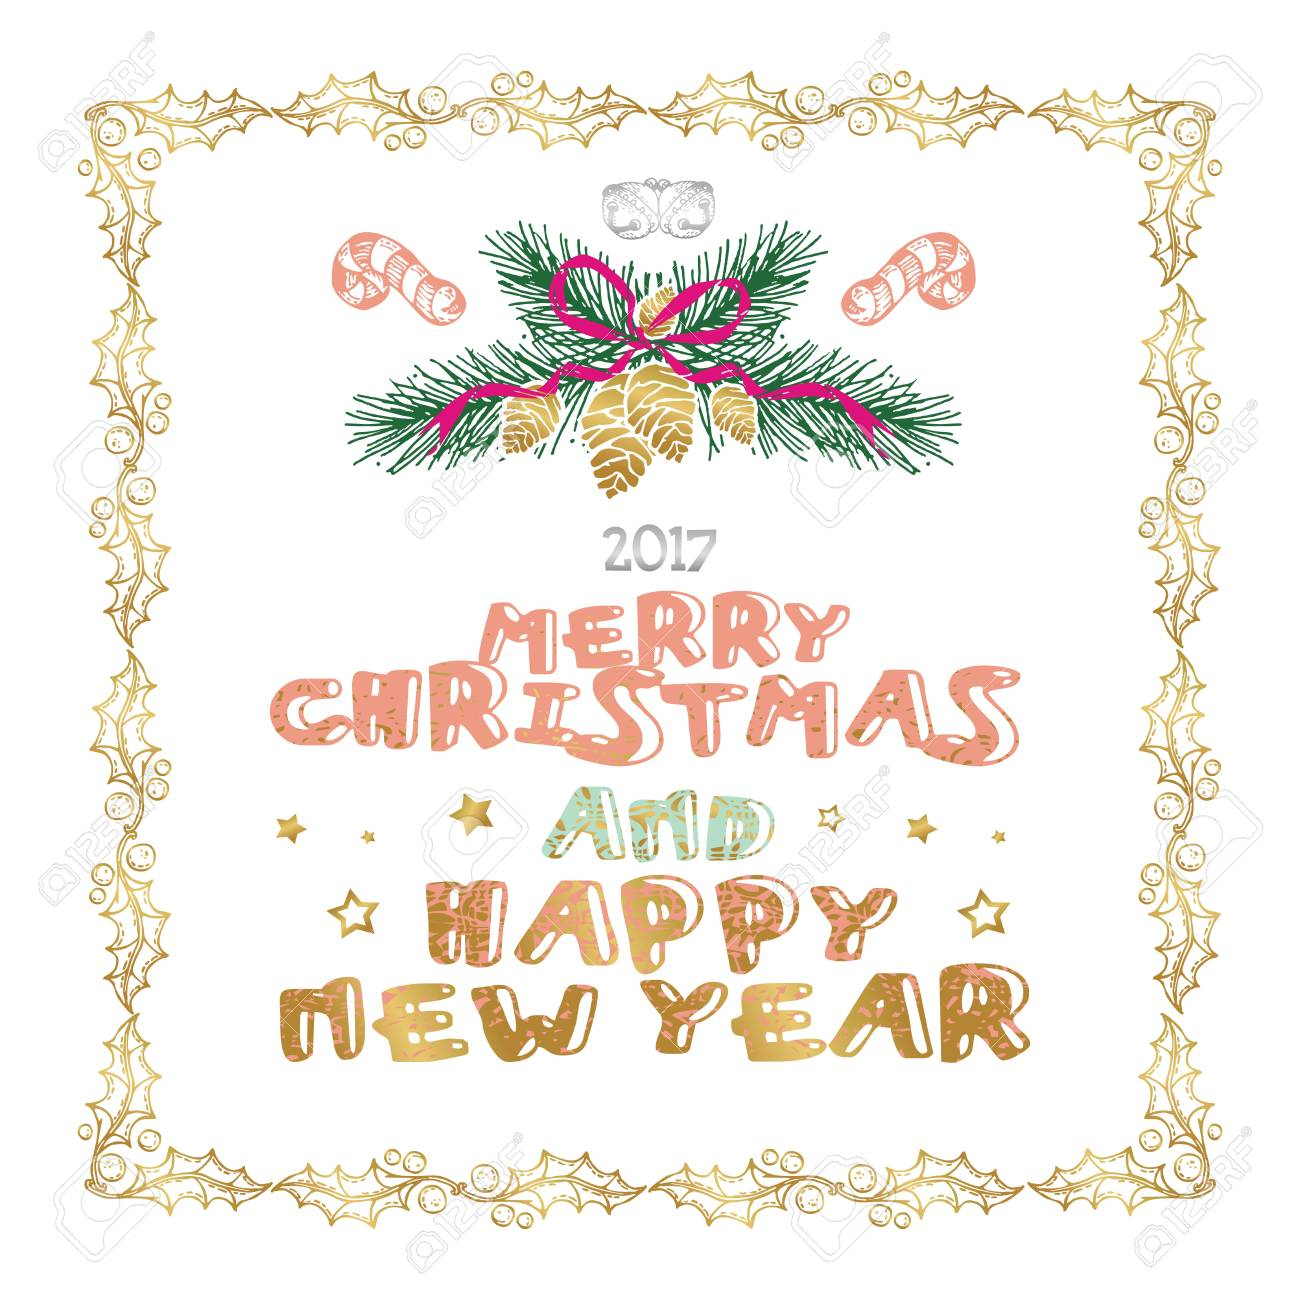 Merry Christmas And Happy New Year Words On White Background ...